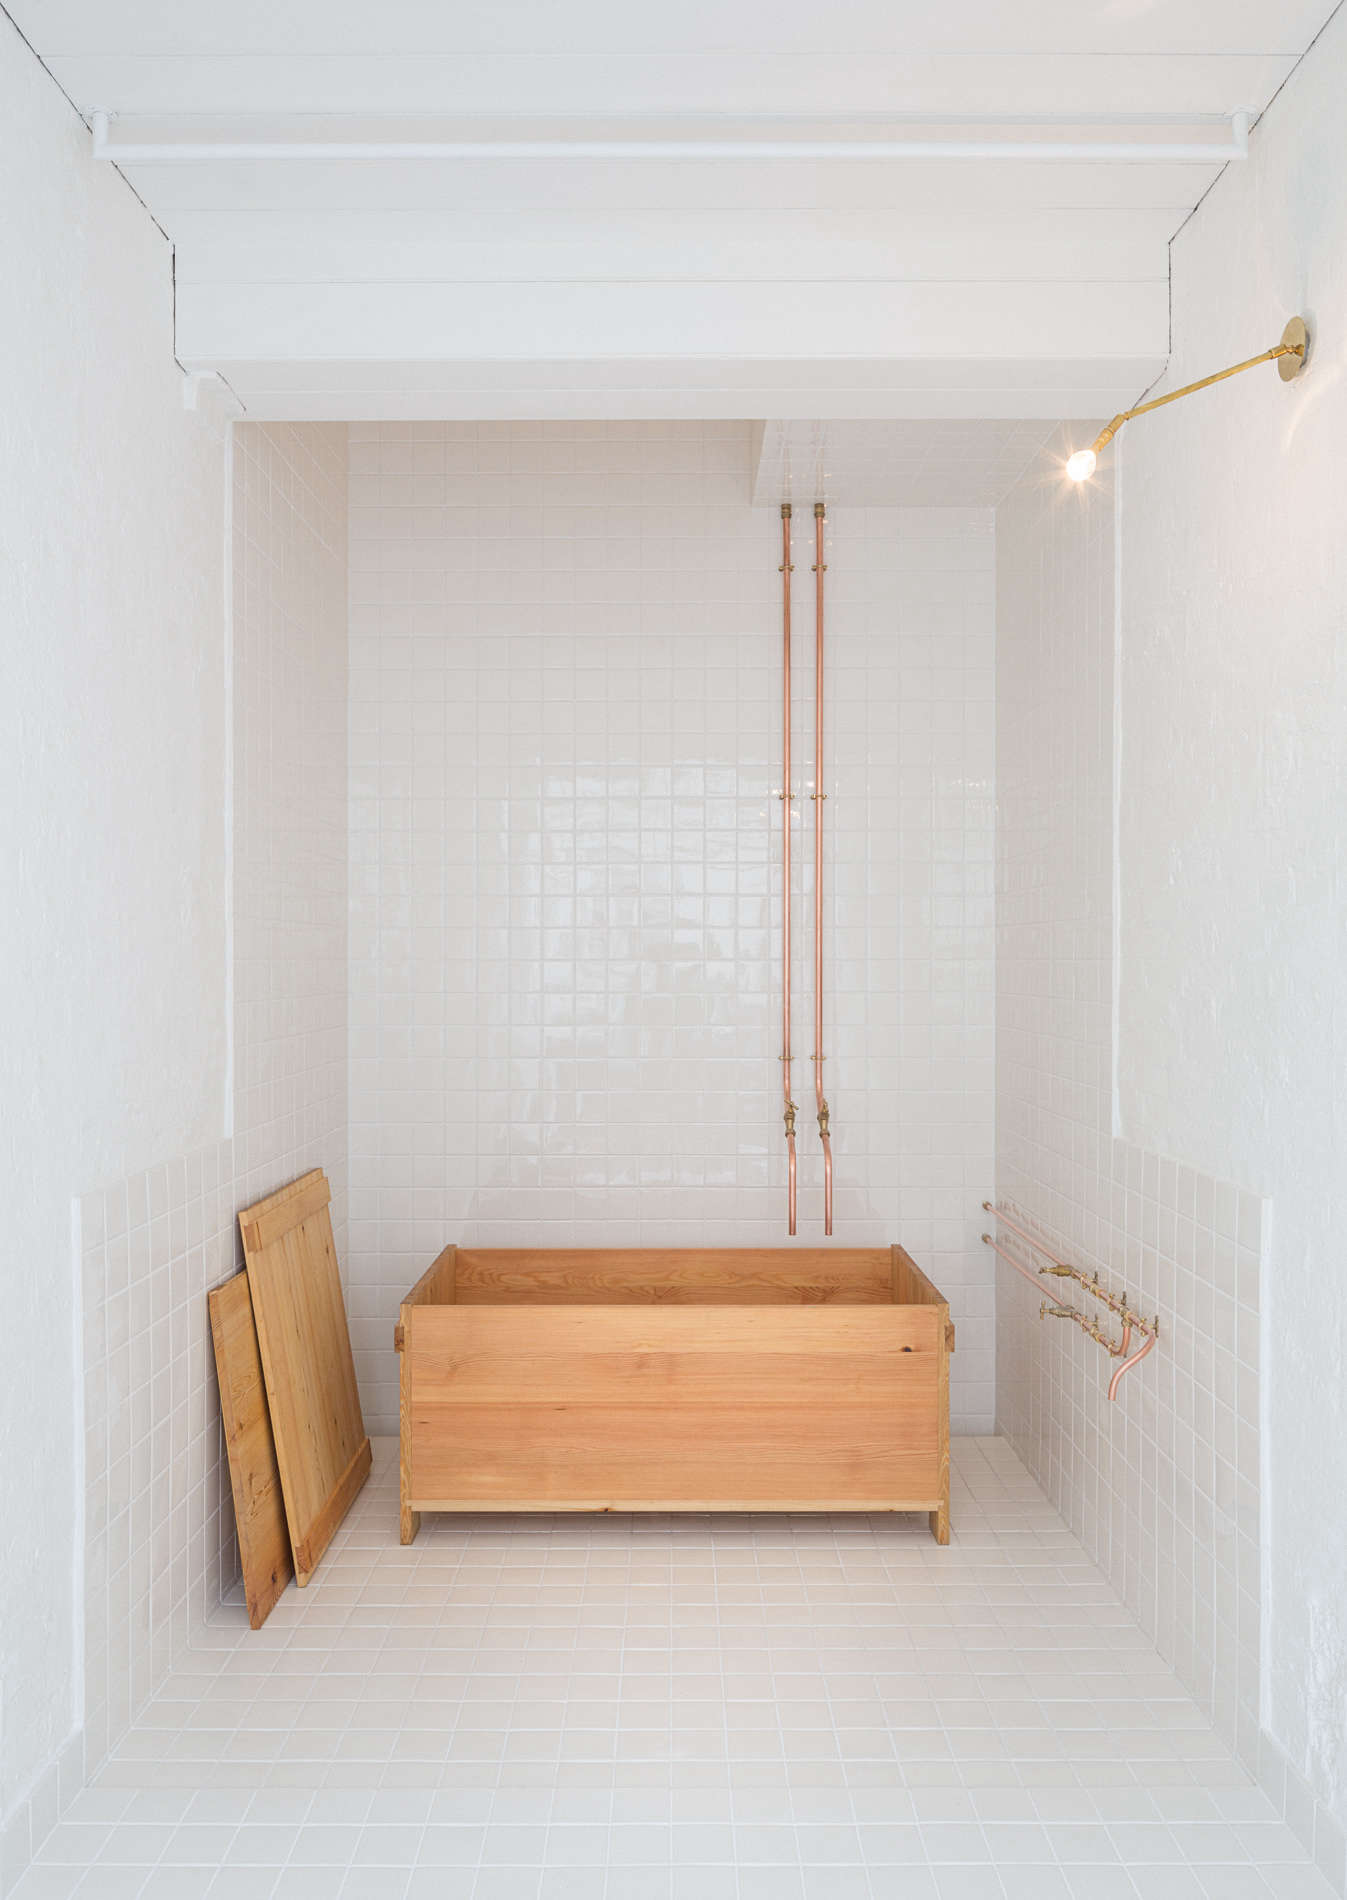 The Badbox is a smaller tub that can be customized for various dimensions and needs (Studio Anna van der Lei works closely with each client to create the right tub). Photograph by Dirk Lindner, courtesy of Anna van der Lei.